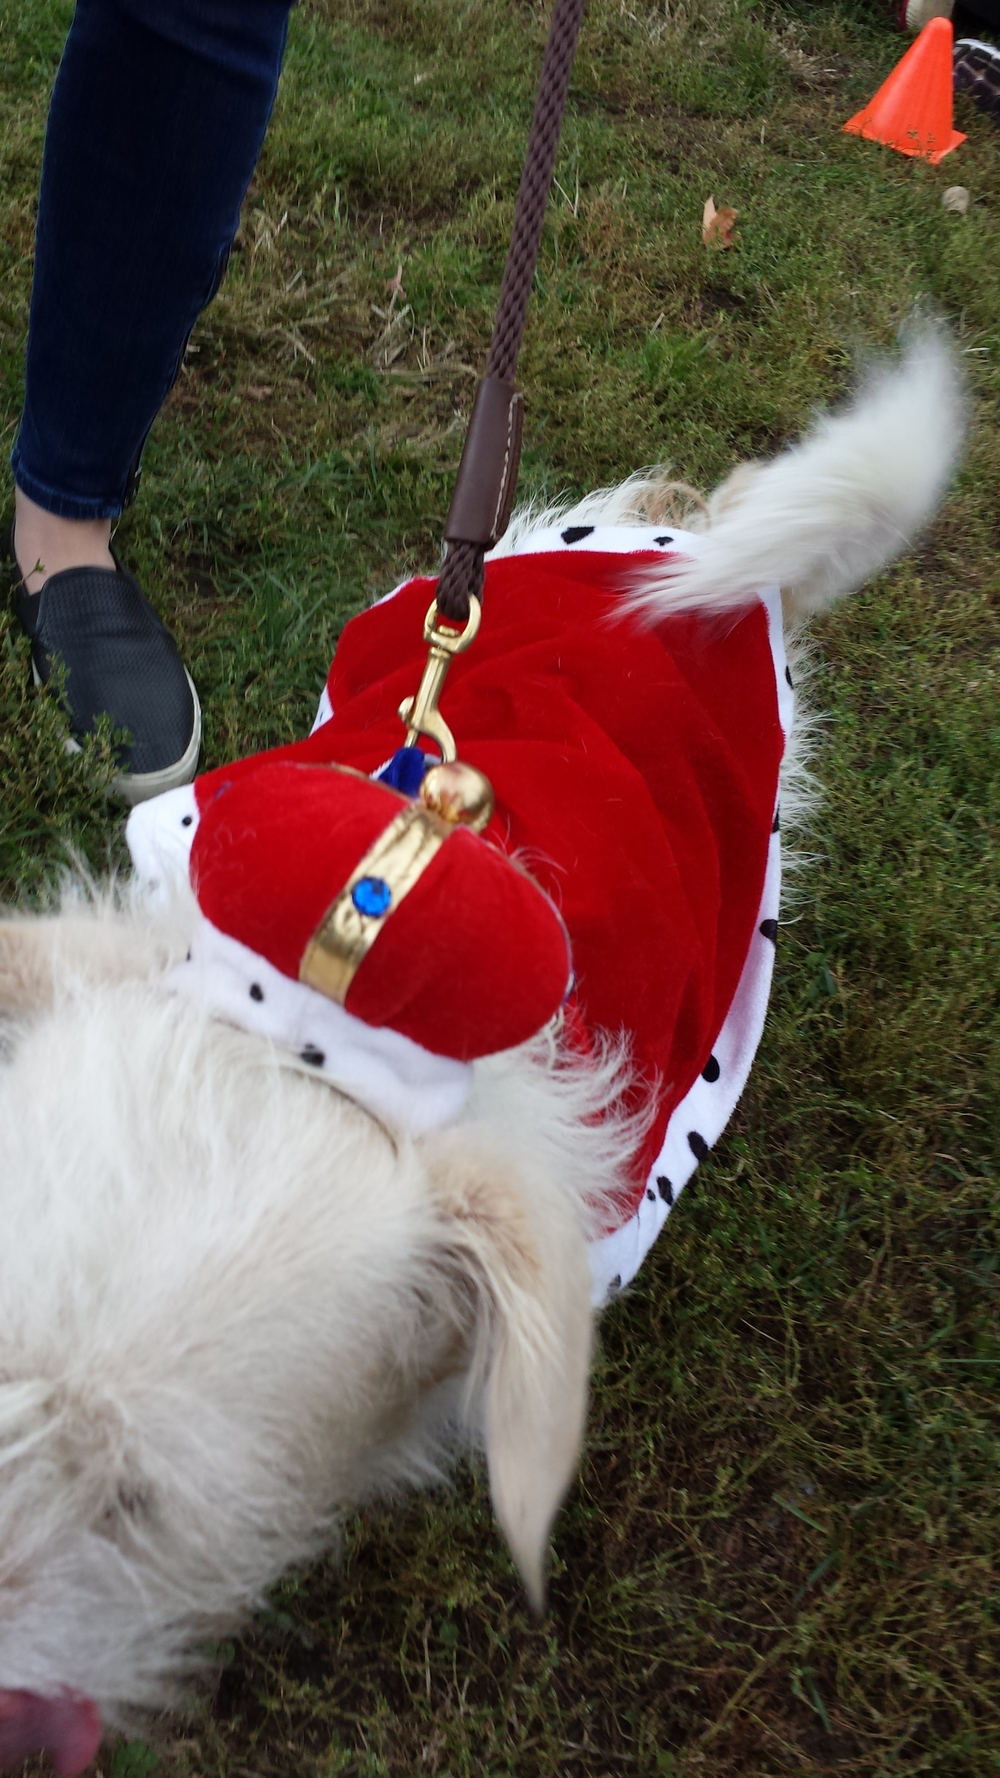 The King (Elroy) came in fourth and won a $50 toward daycare or boarding at  Cheeky Dog Daycare .